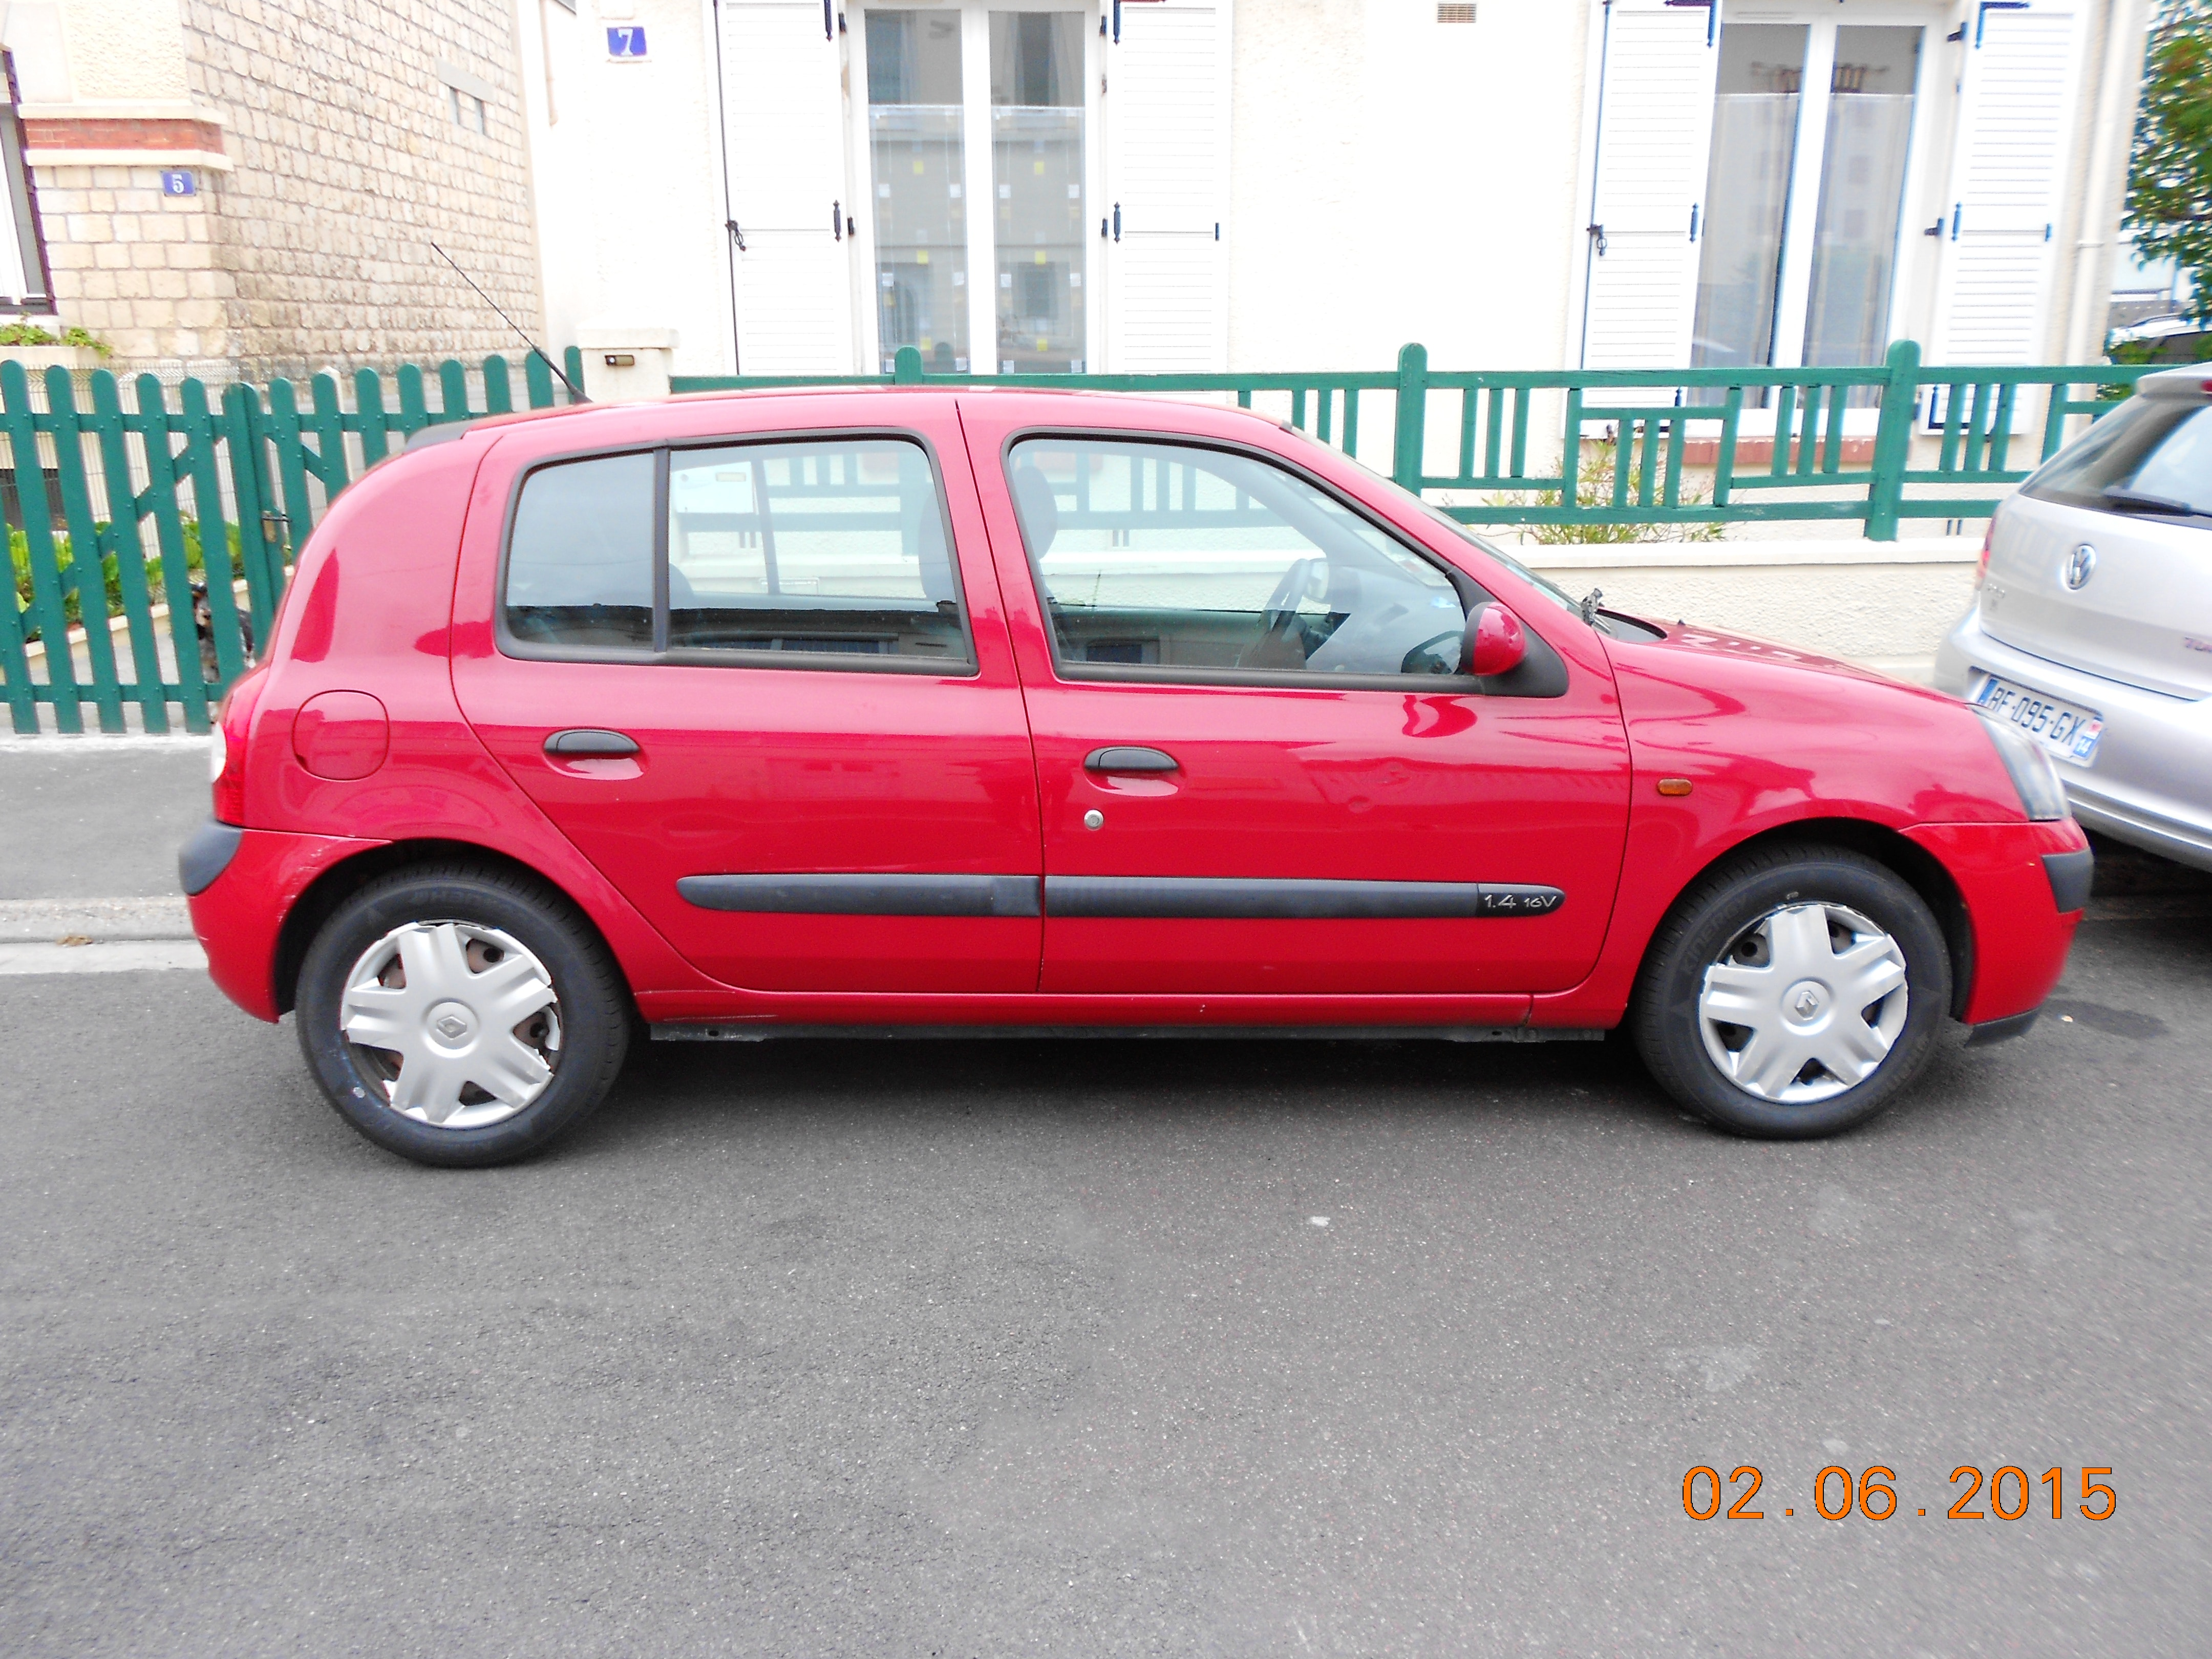 Renault clio phase II, 2002, Essence, automatique